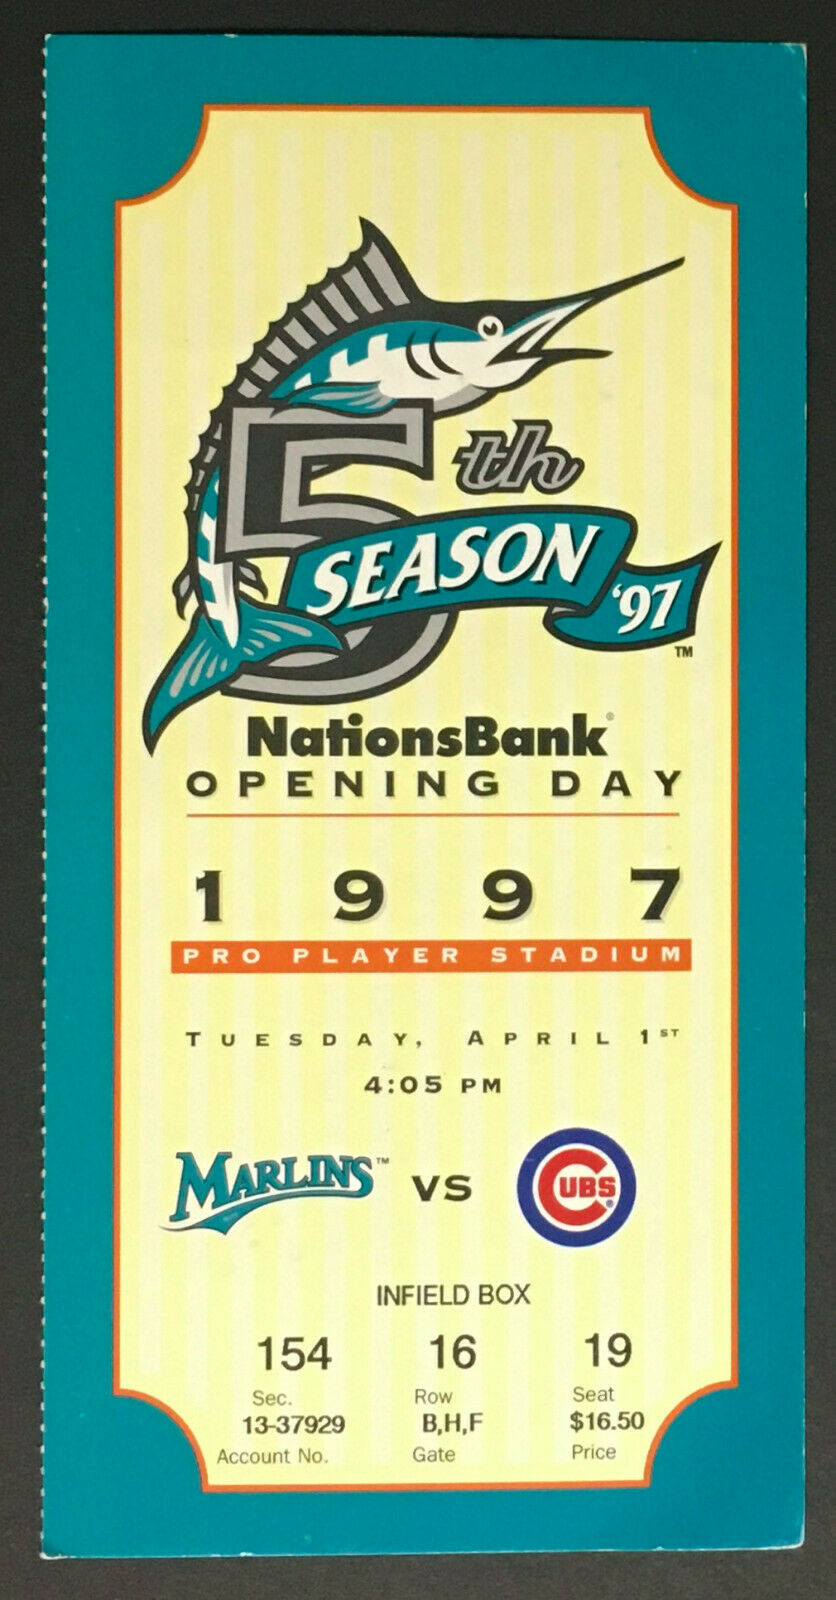 1997 Pro Player Stadium Florida Marlins v Cubs Opening Day Ticket 5th Season MLB